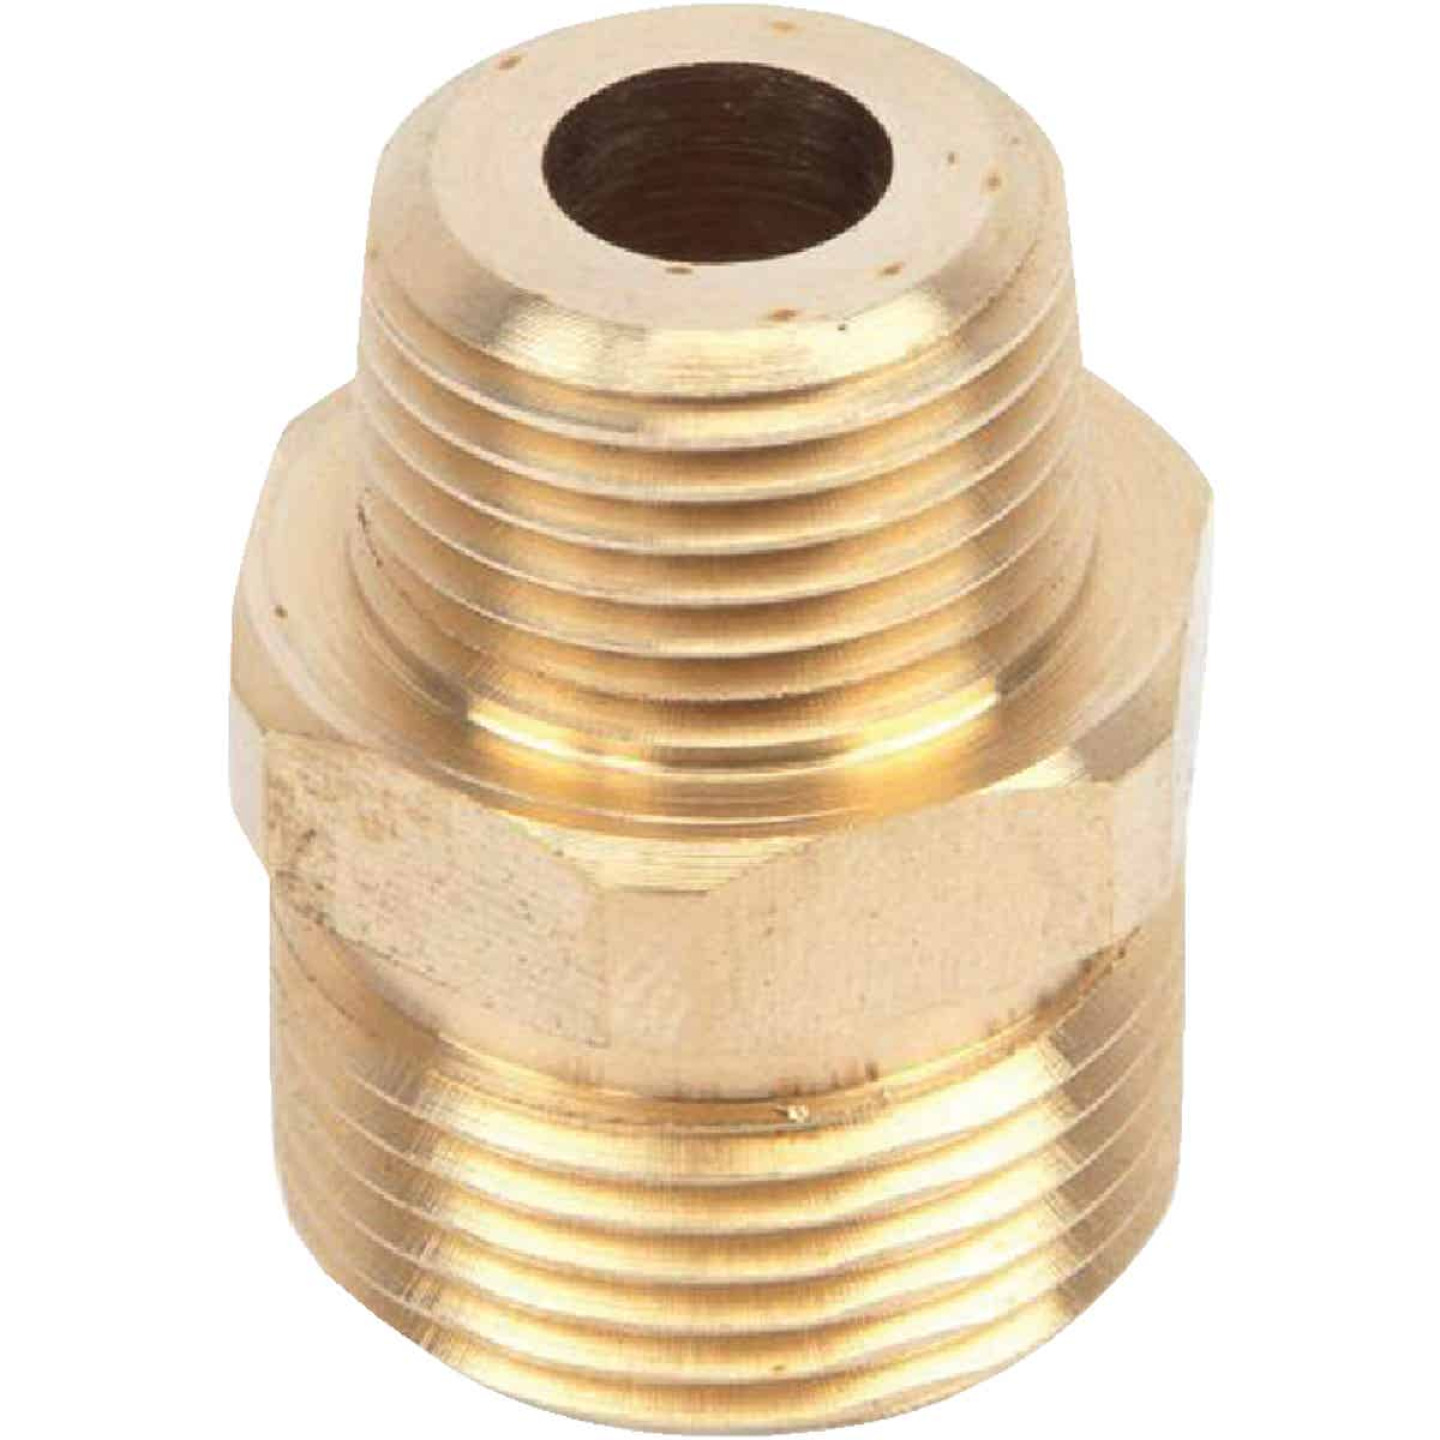 Forney 3/8 In. Male Pressure Washer Screw Nipple Image 3